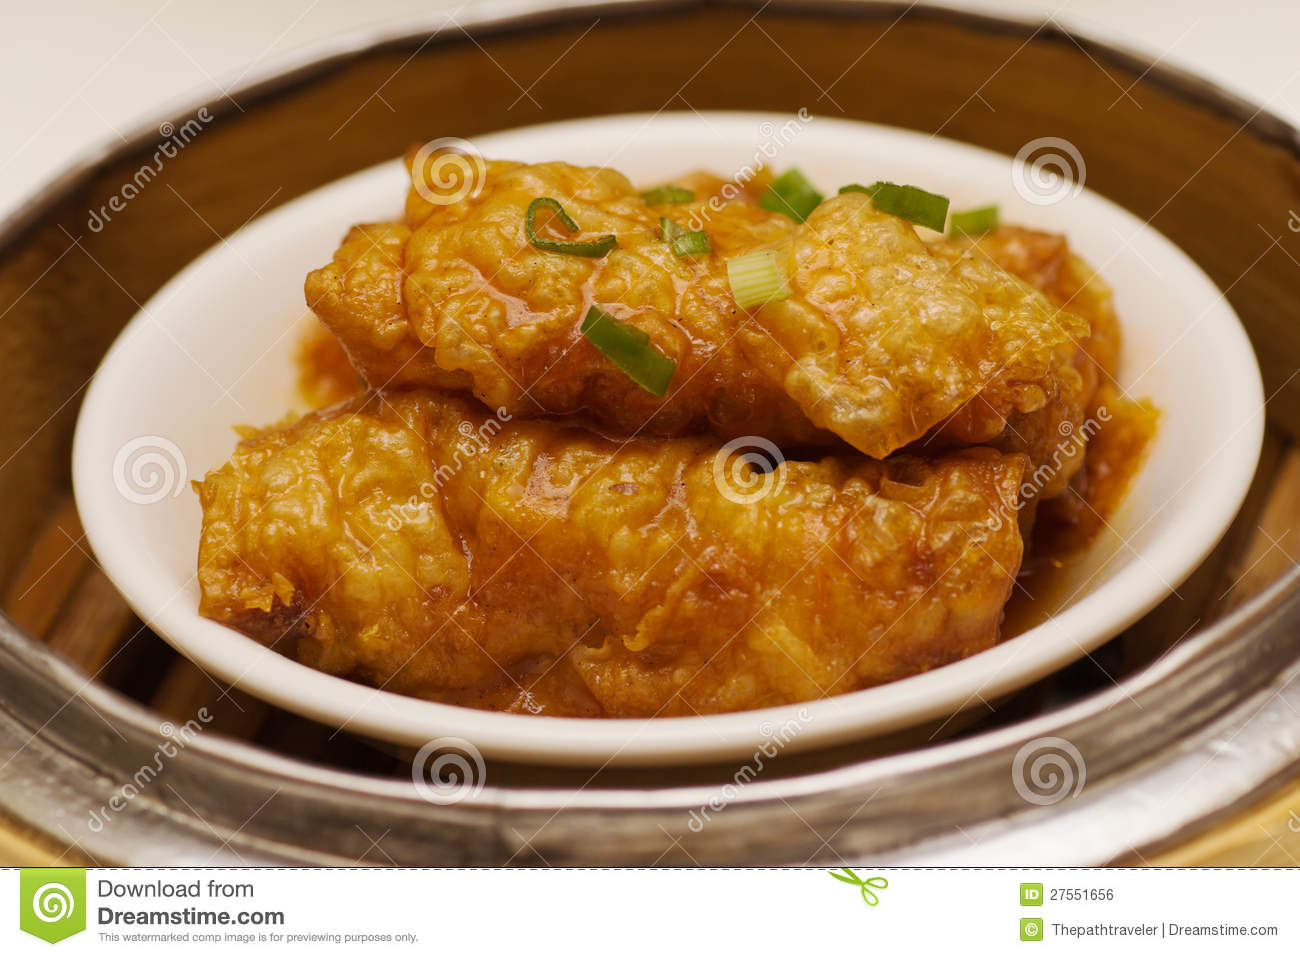 Tofu Skin Roll Royalty Free Stock Image - Image: 27551656